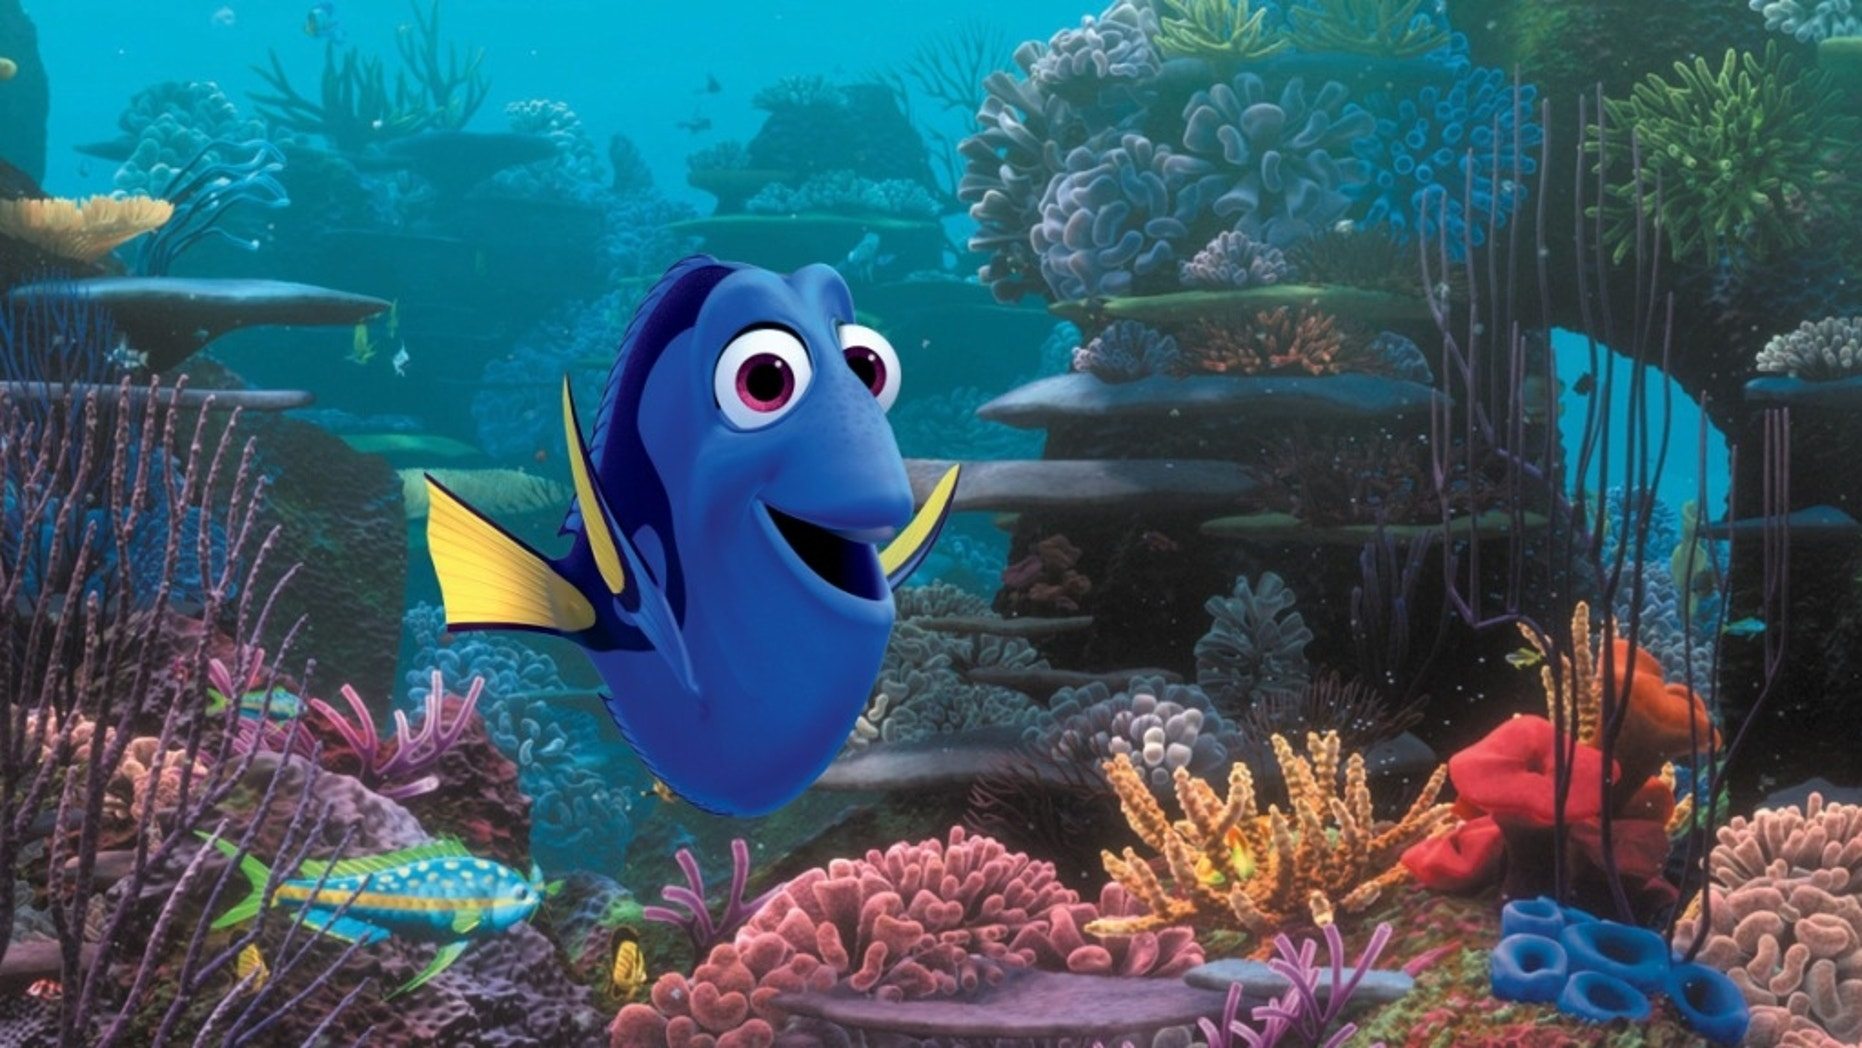 """This film image released by Disney Pixar shows the character Dory, voiced by Ellen DeGeneres. The character, first introduced in """"Finding Nemo,"""" returns for the sequel, """"Finding Dory,"""" set for release on Nov. 25, 2015."""